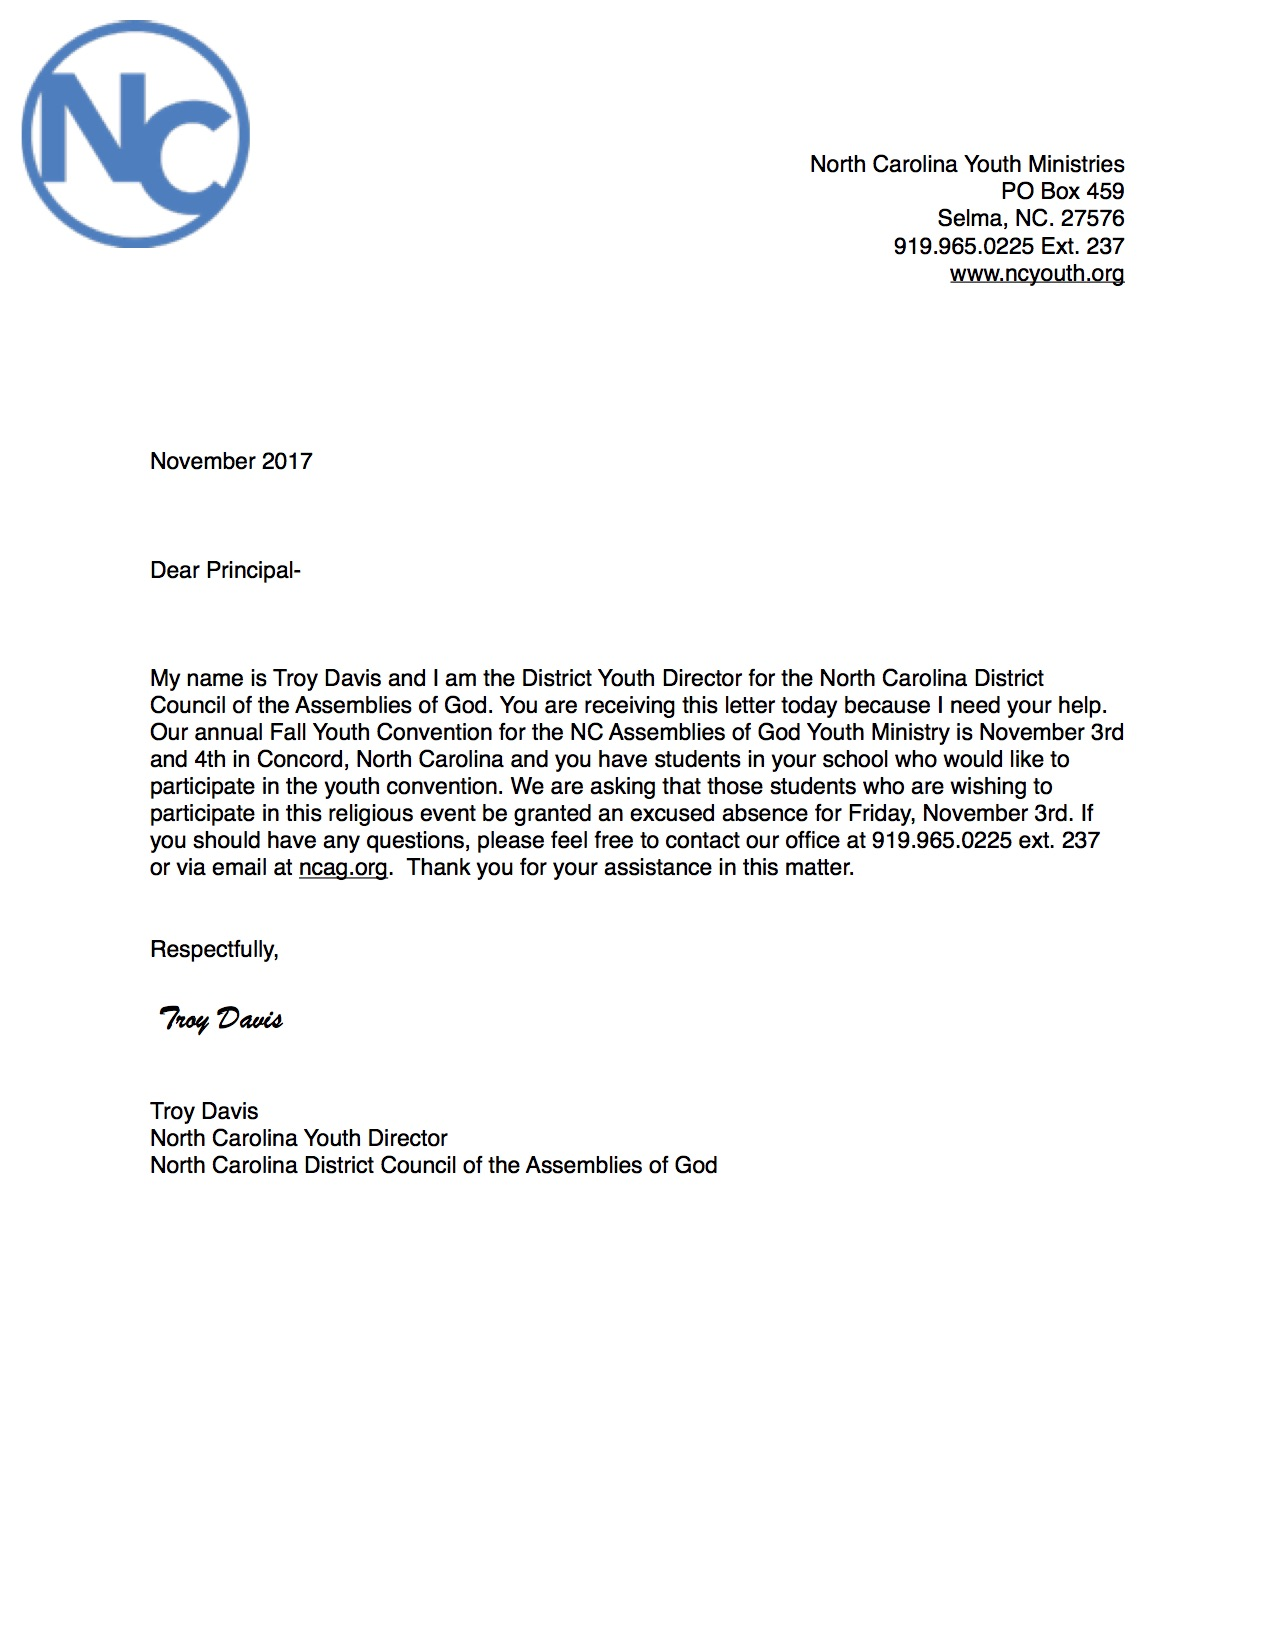 Convention School Absence Excuse Letter.jpg